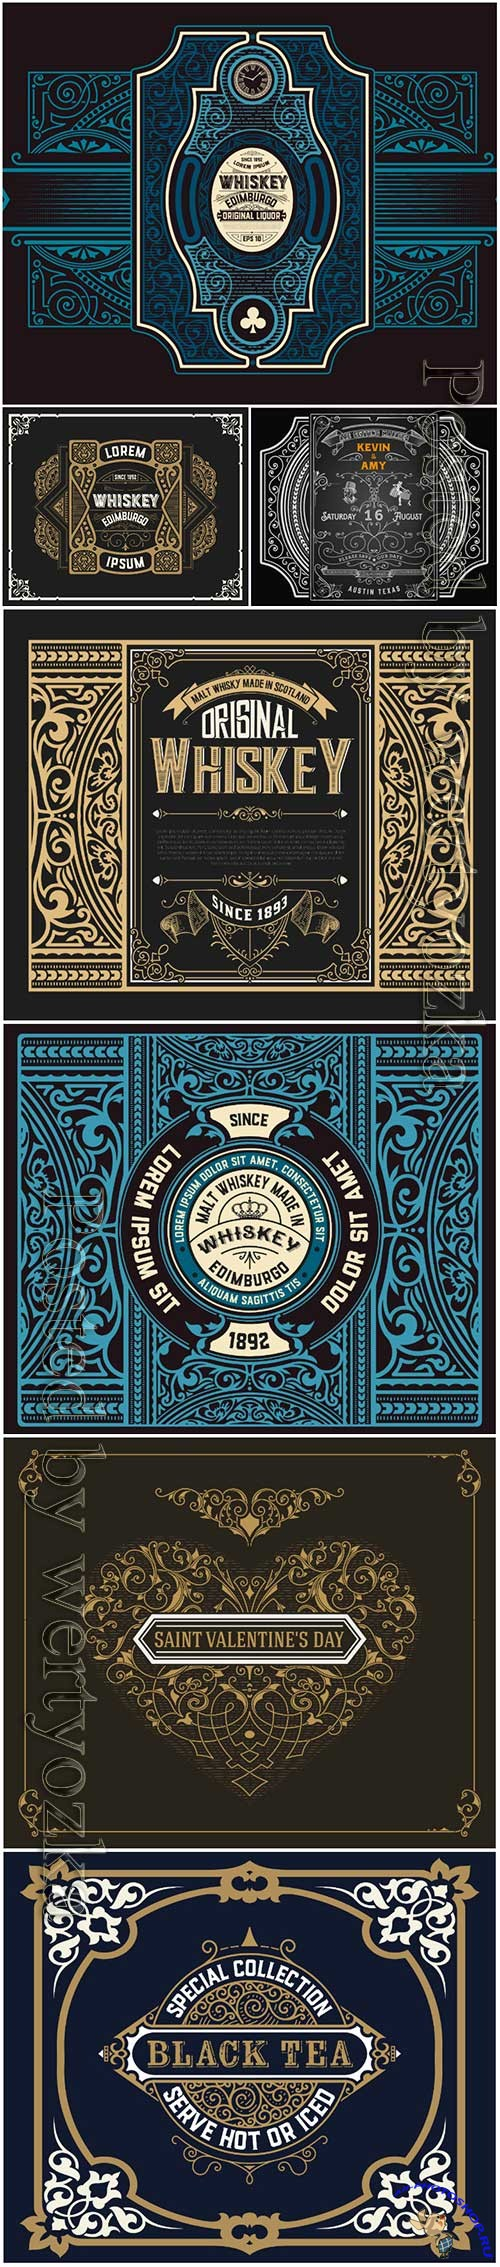 Vector vintage labels, borders, frames, corners, emblems and ribbons